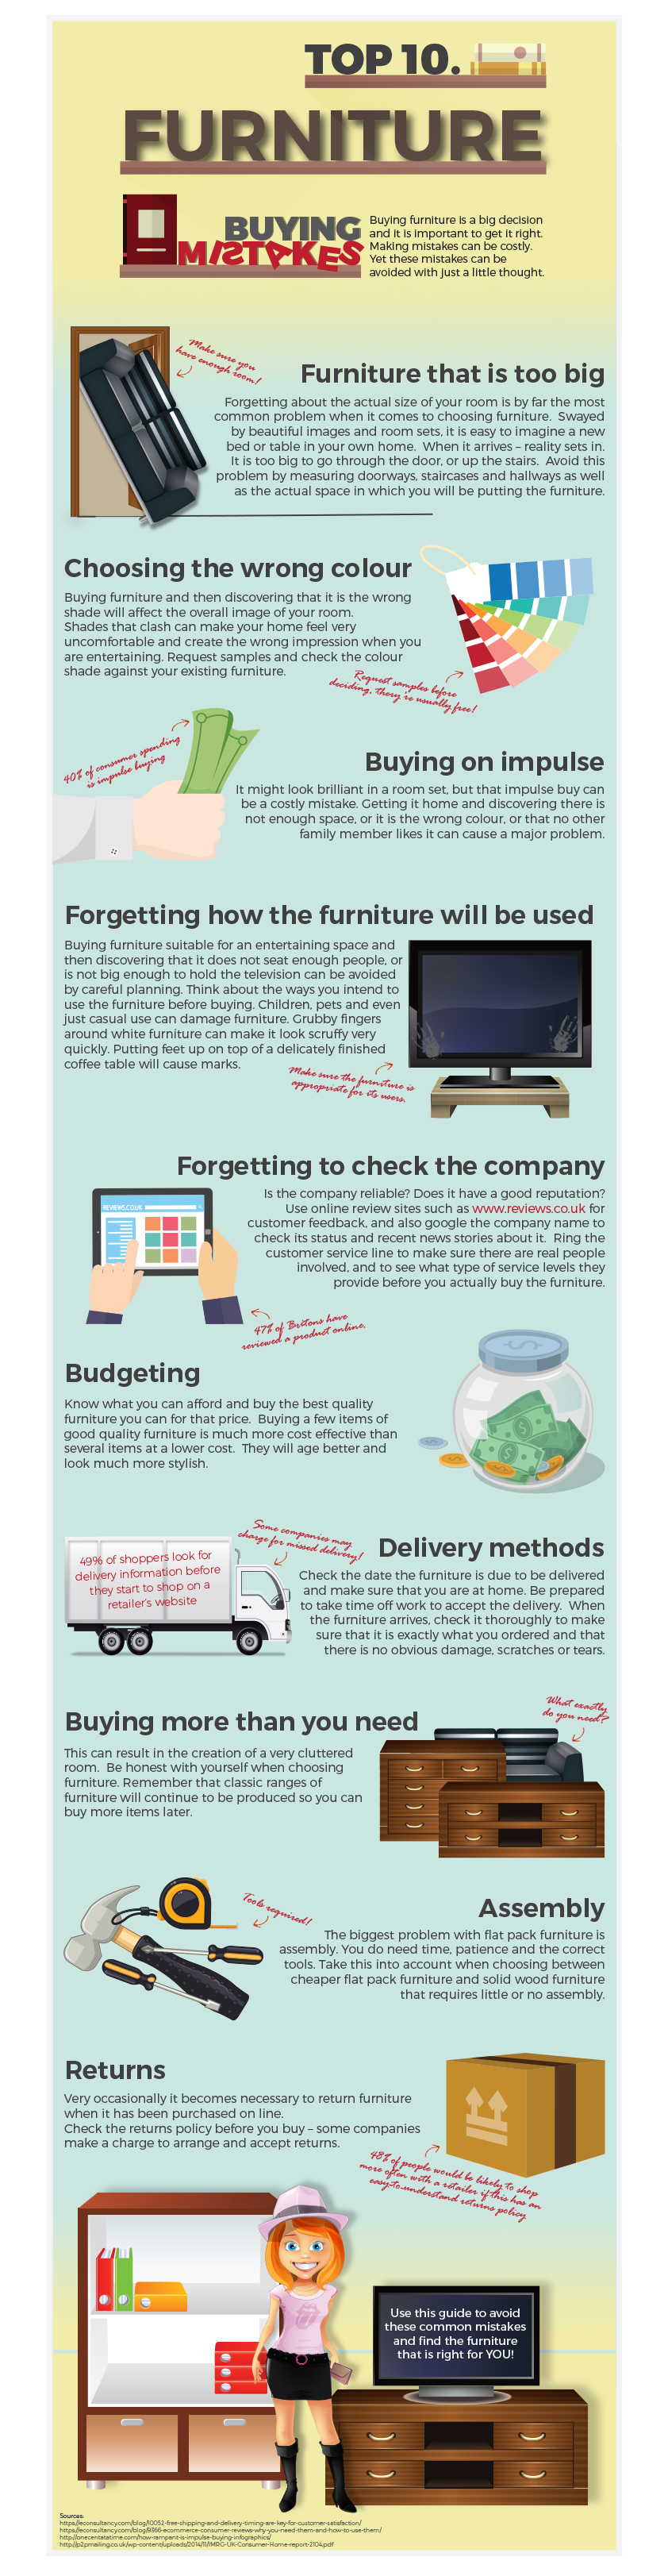 infographic-mistakes-new